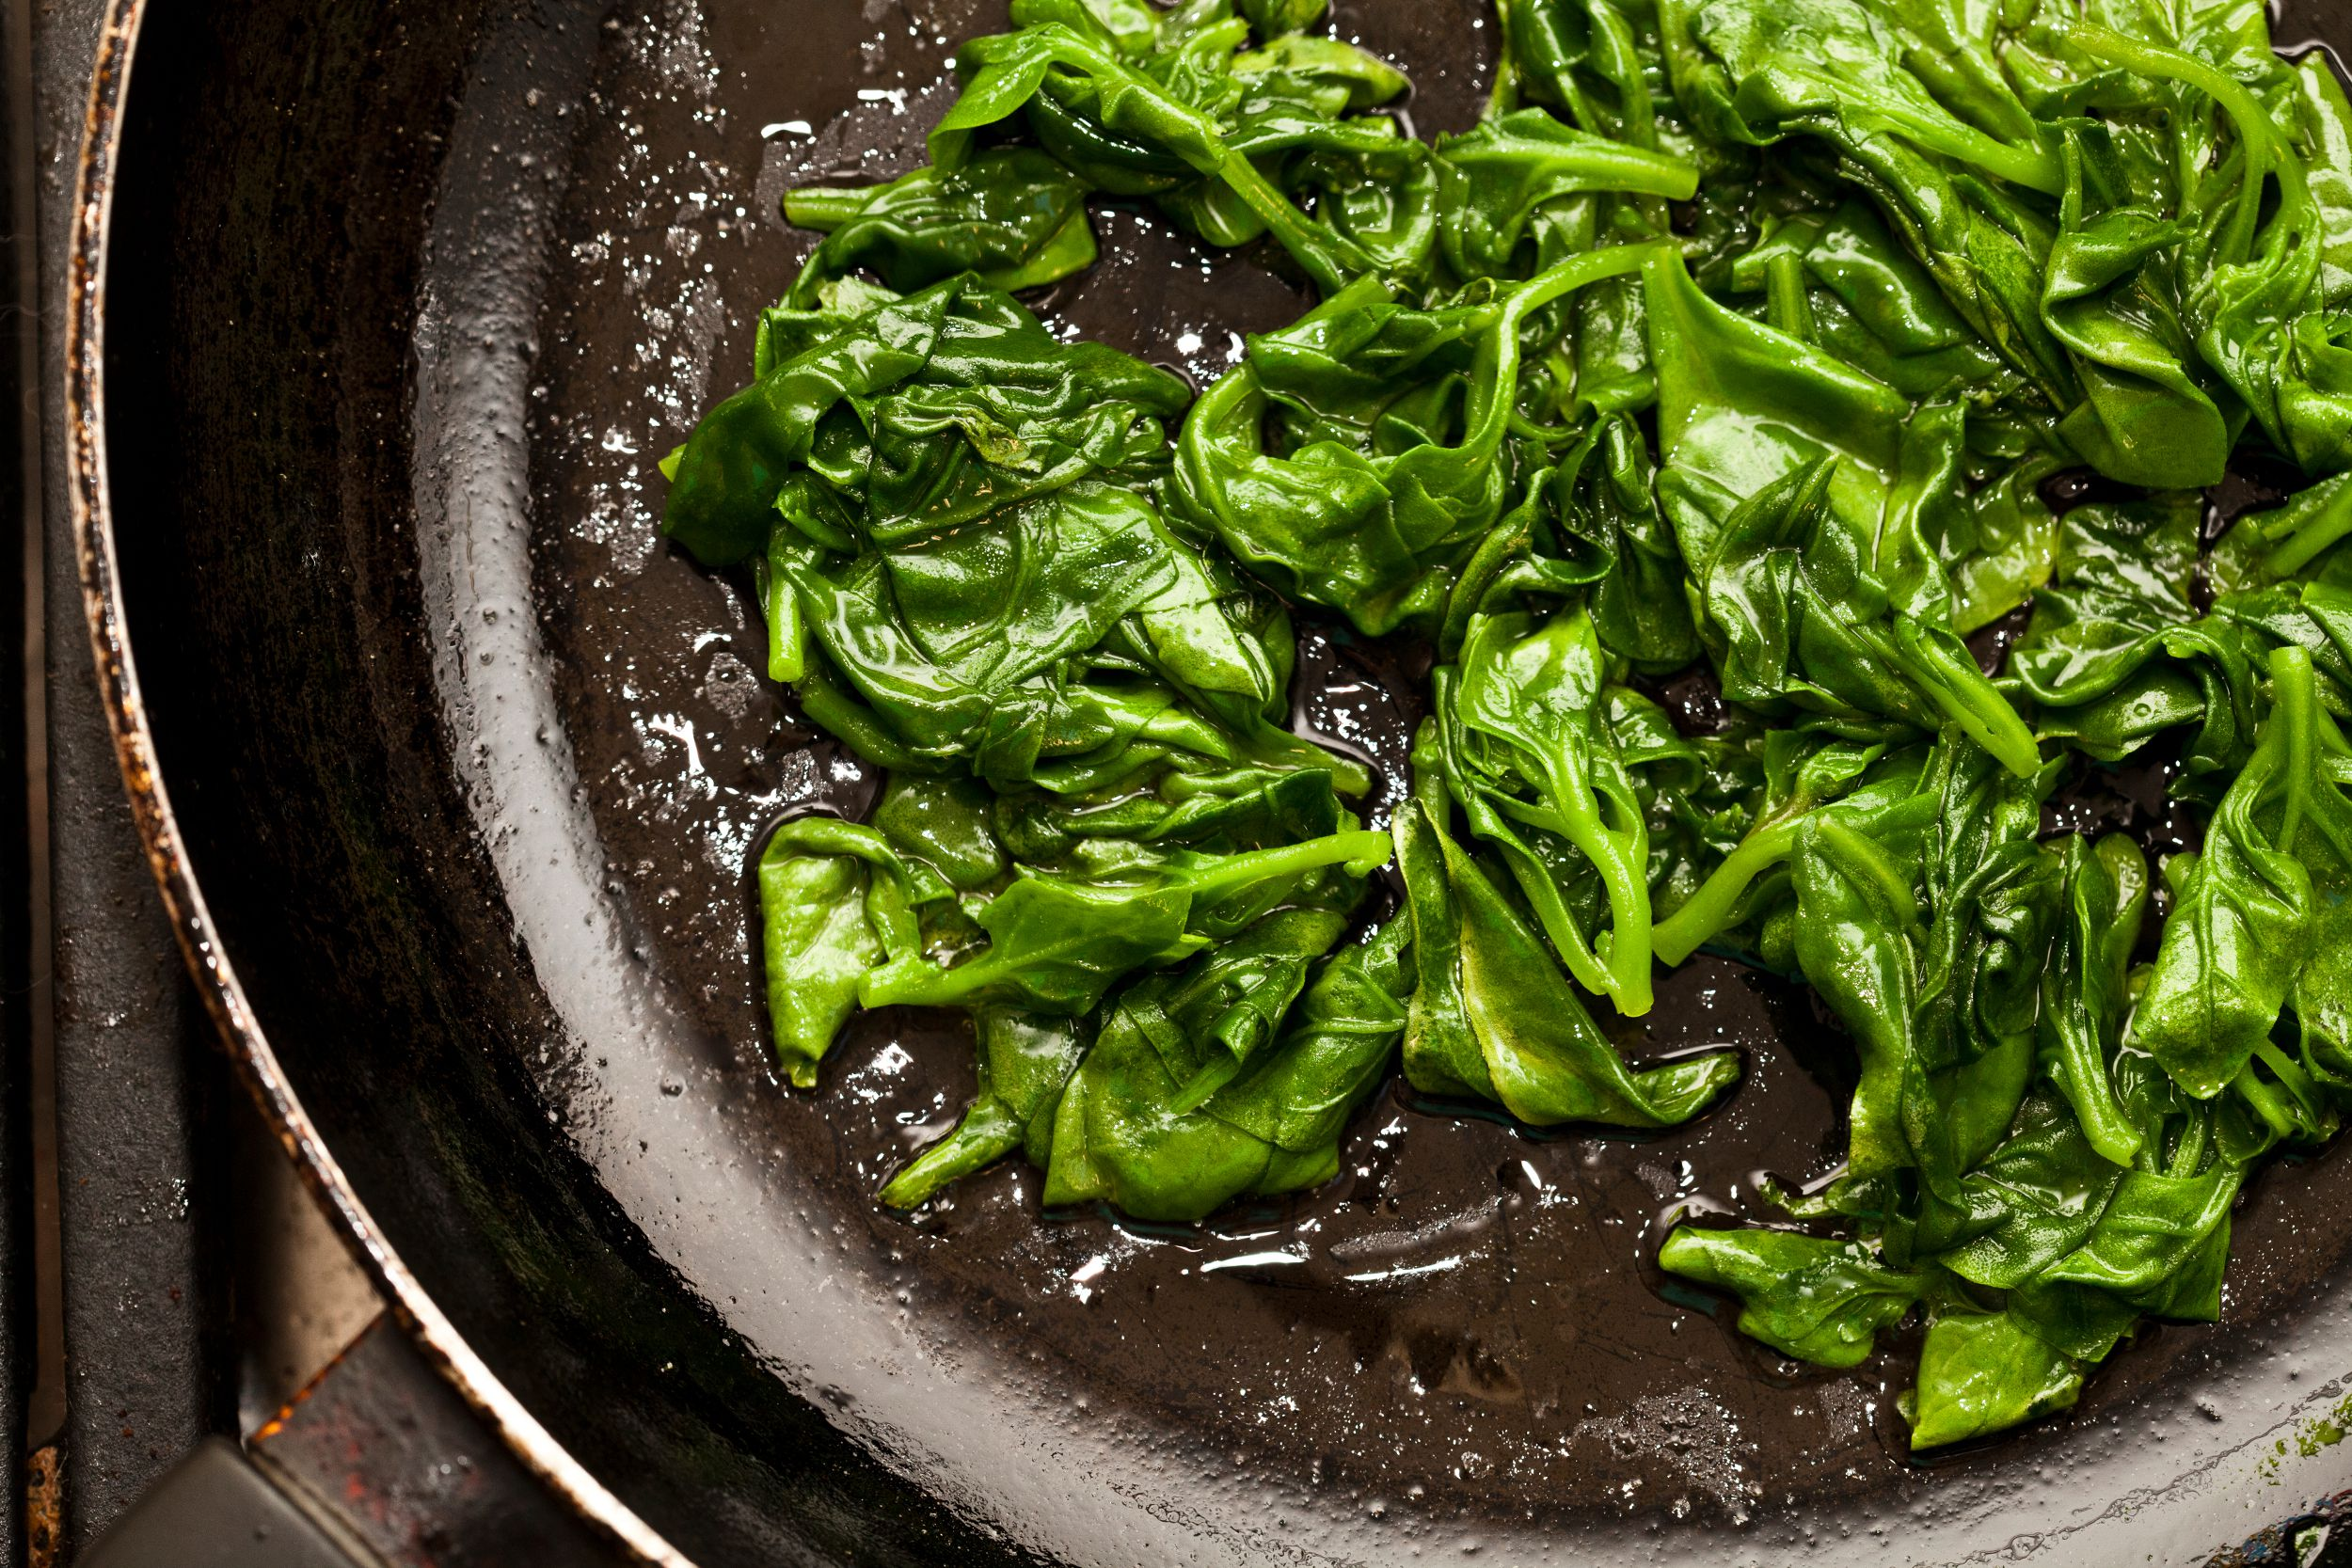 Greens sauteed in bacon fat